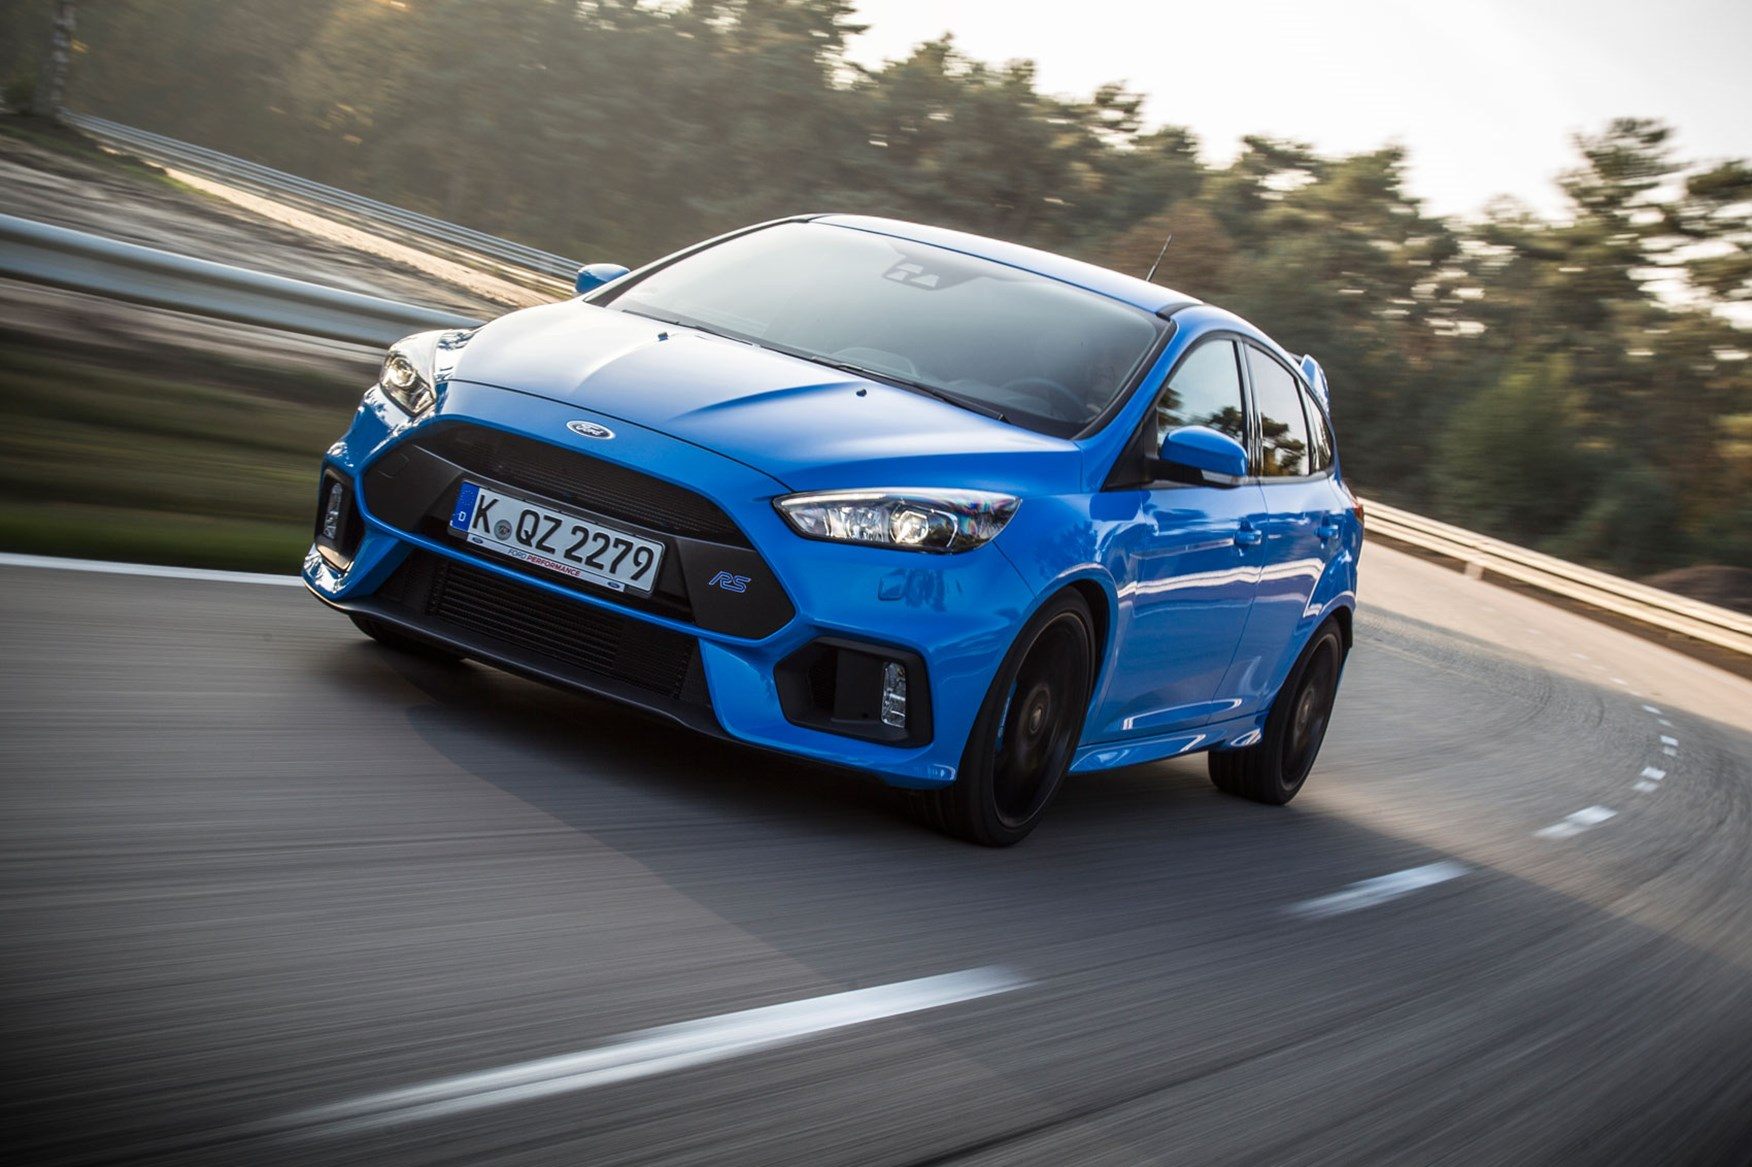 2016 Ford Focus RS Thoughts babybmw